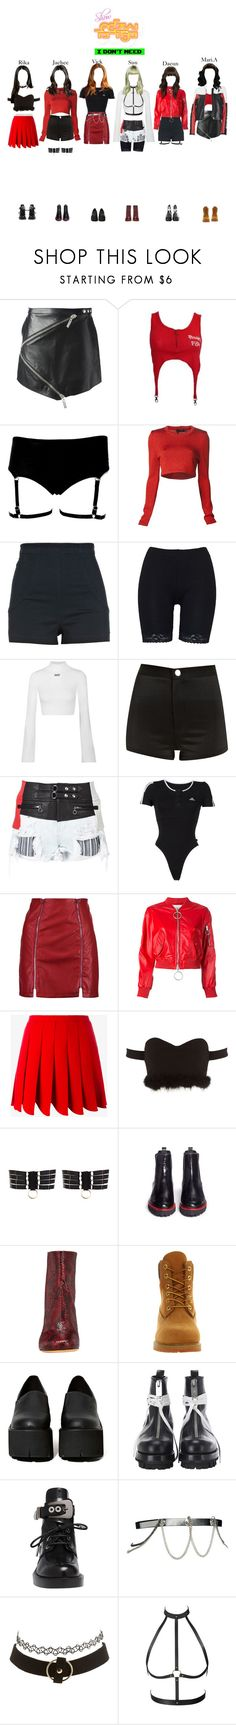 """""""[HOT] StarZ - I Don't Need Show Music Core"""" by starz-official ❤ liked on Polyvore featuring Kenzo, Calvin Klein Collection, River Island, Off-White, Alexander Wang, adidas, Boohoo, Miu Miu, Bordelle and Frances Valentine"""